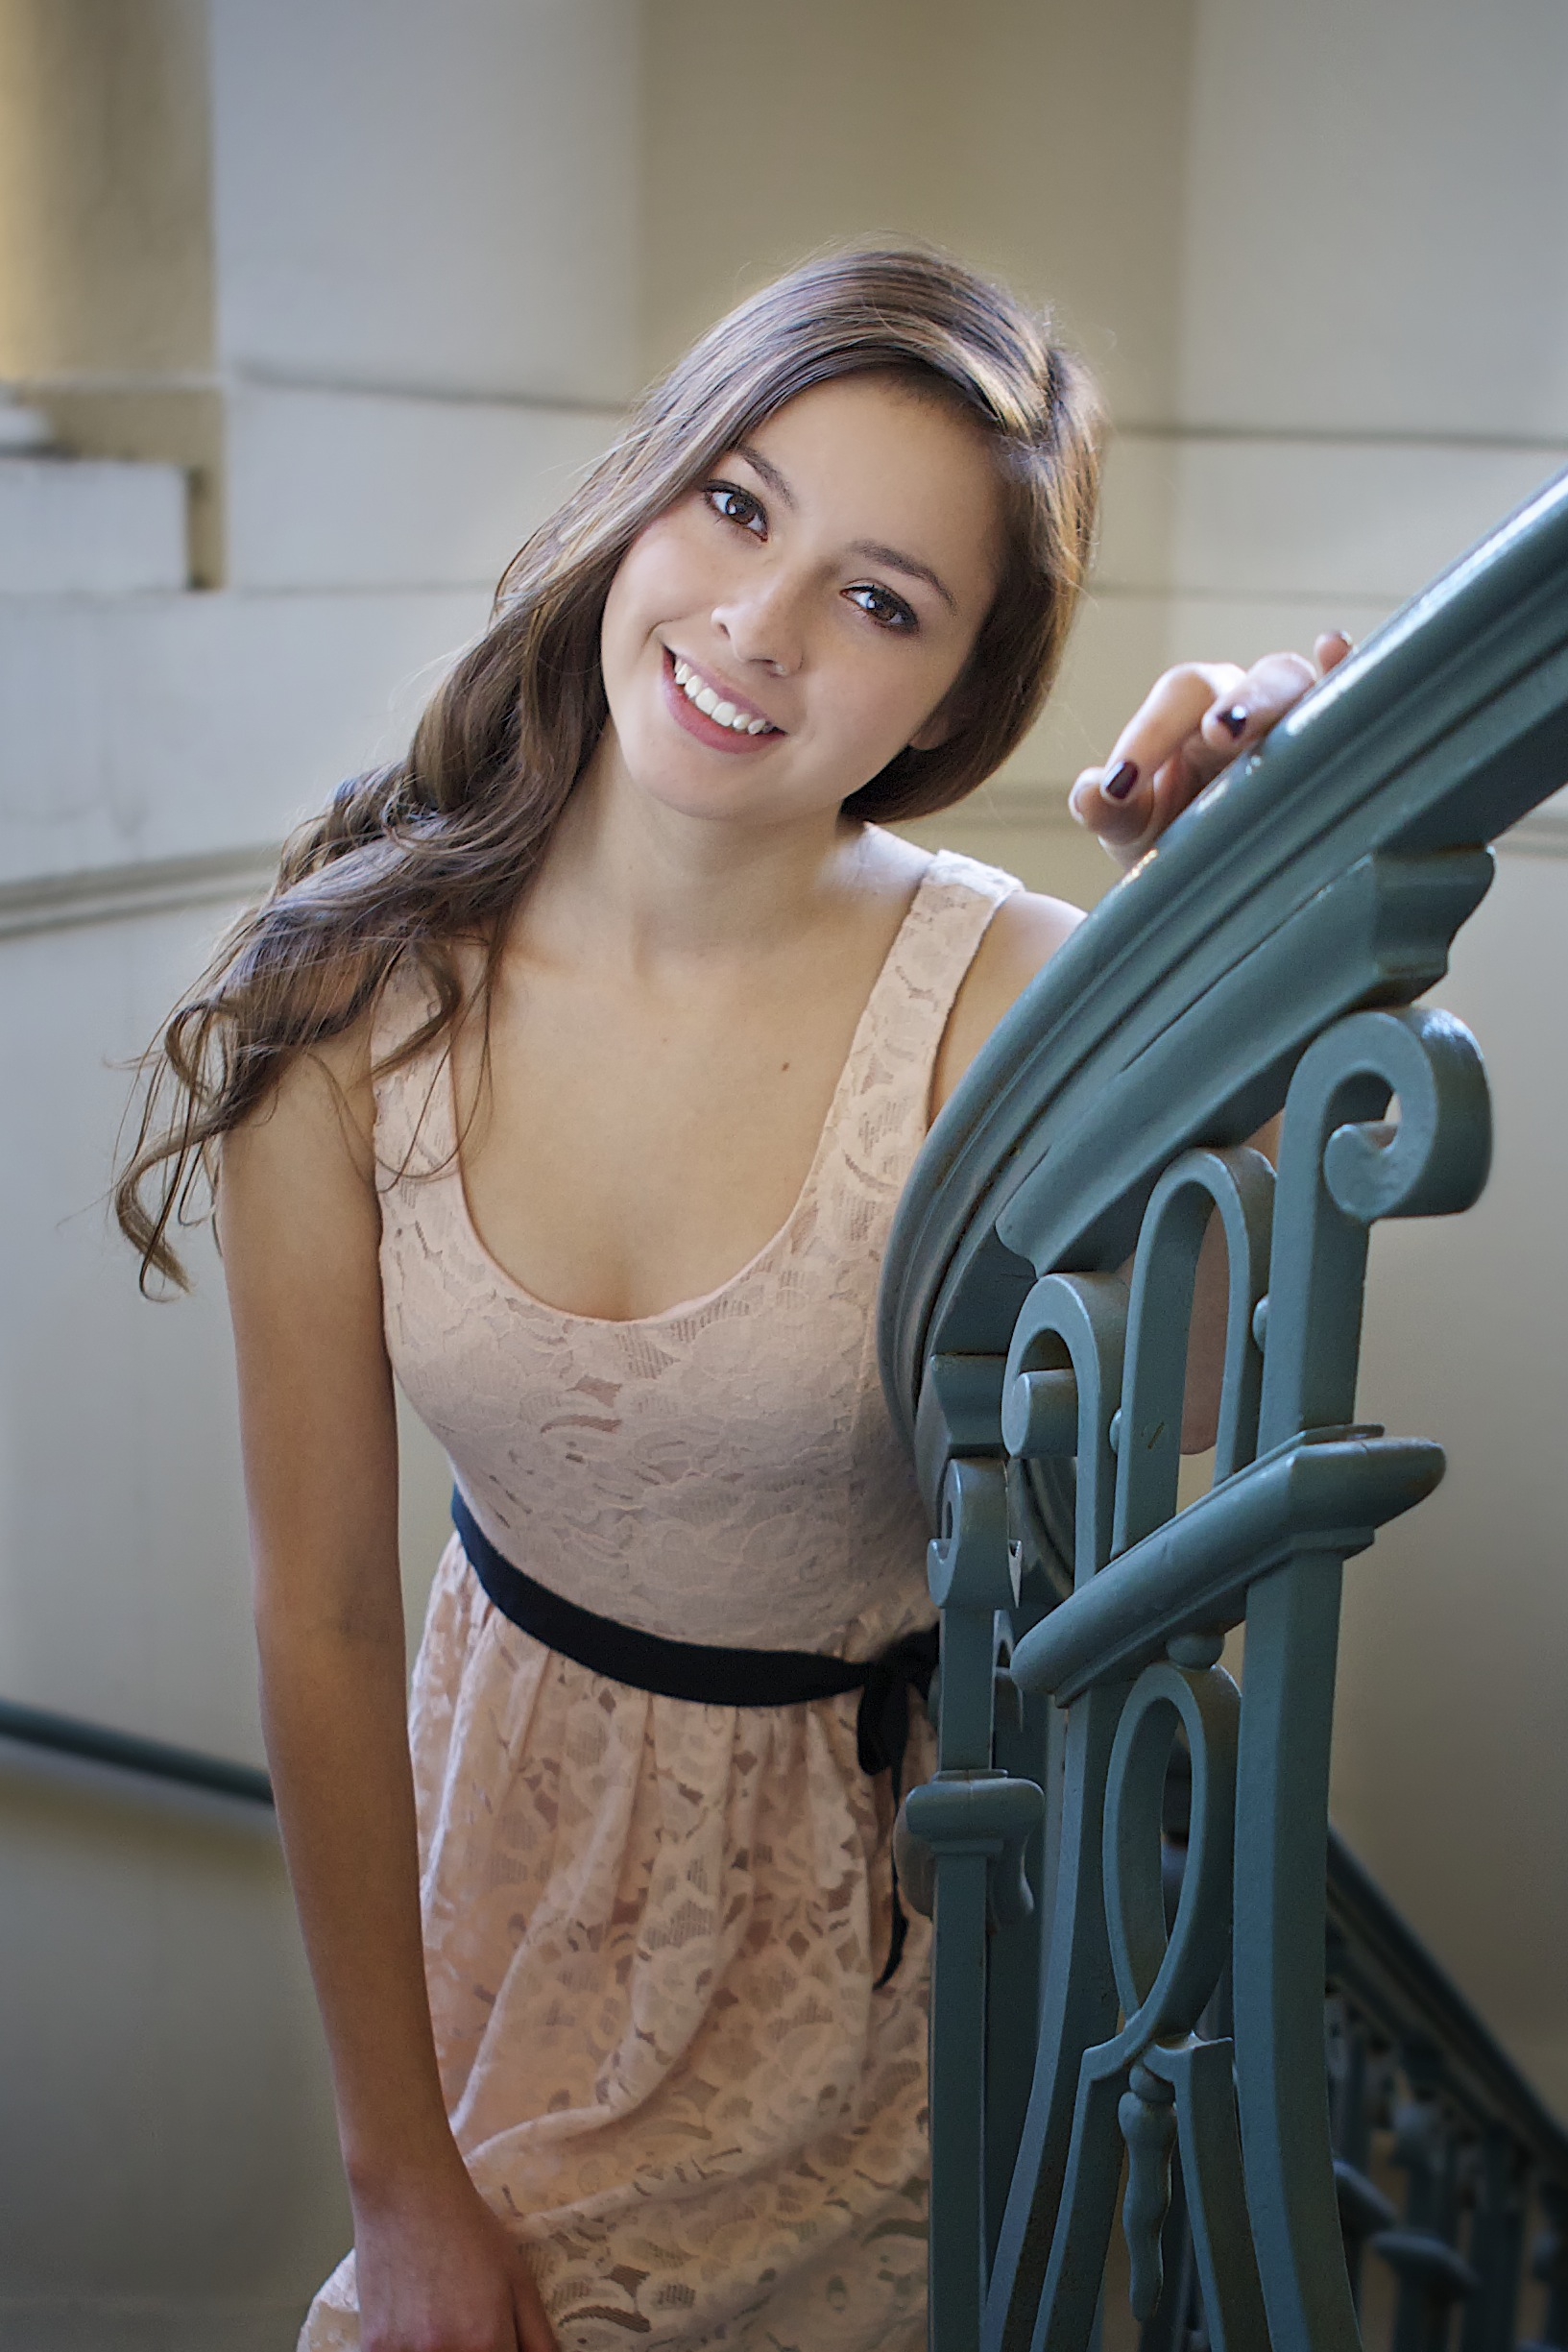 Most Trusted Seniors Online Dating Websites In Canada